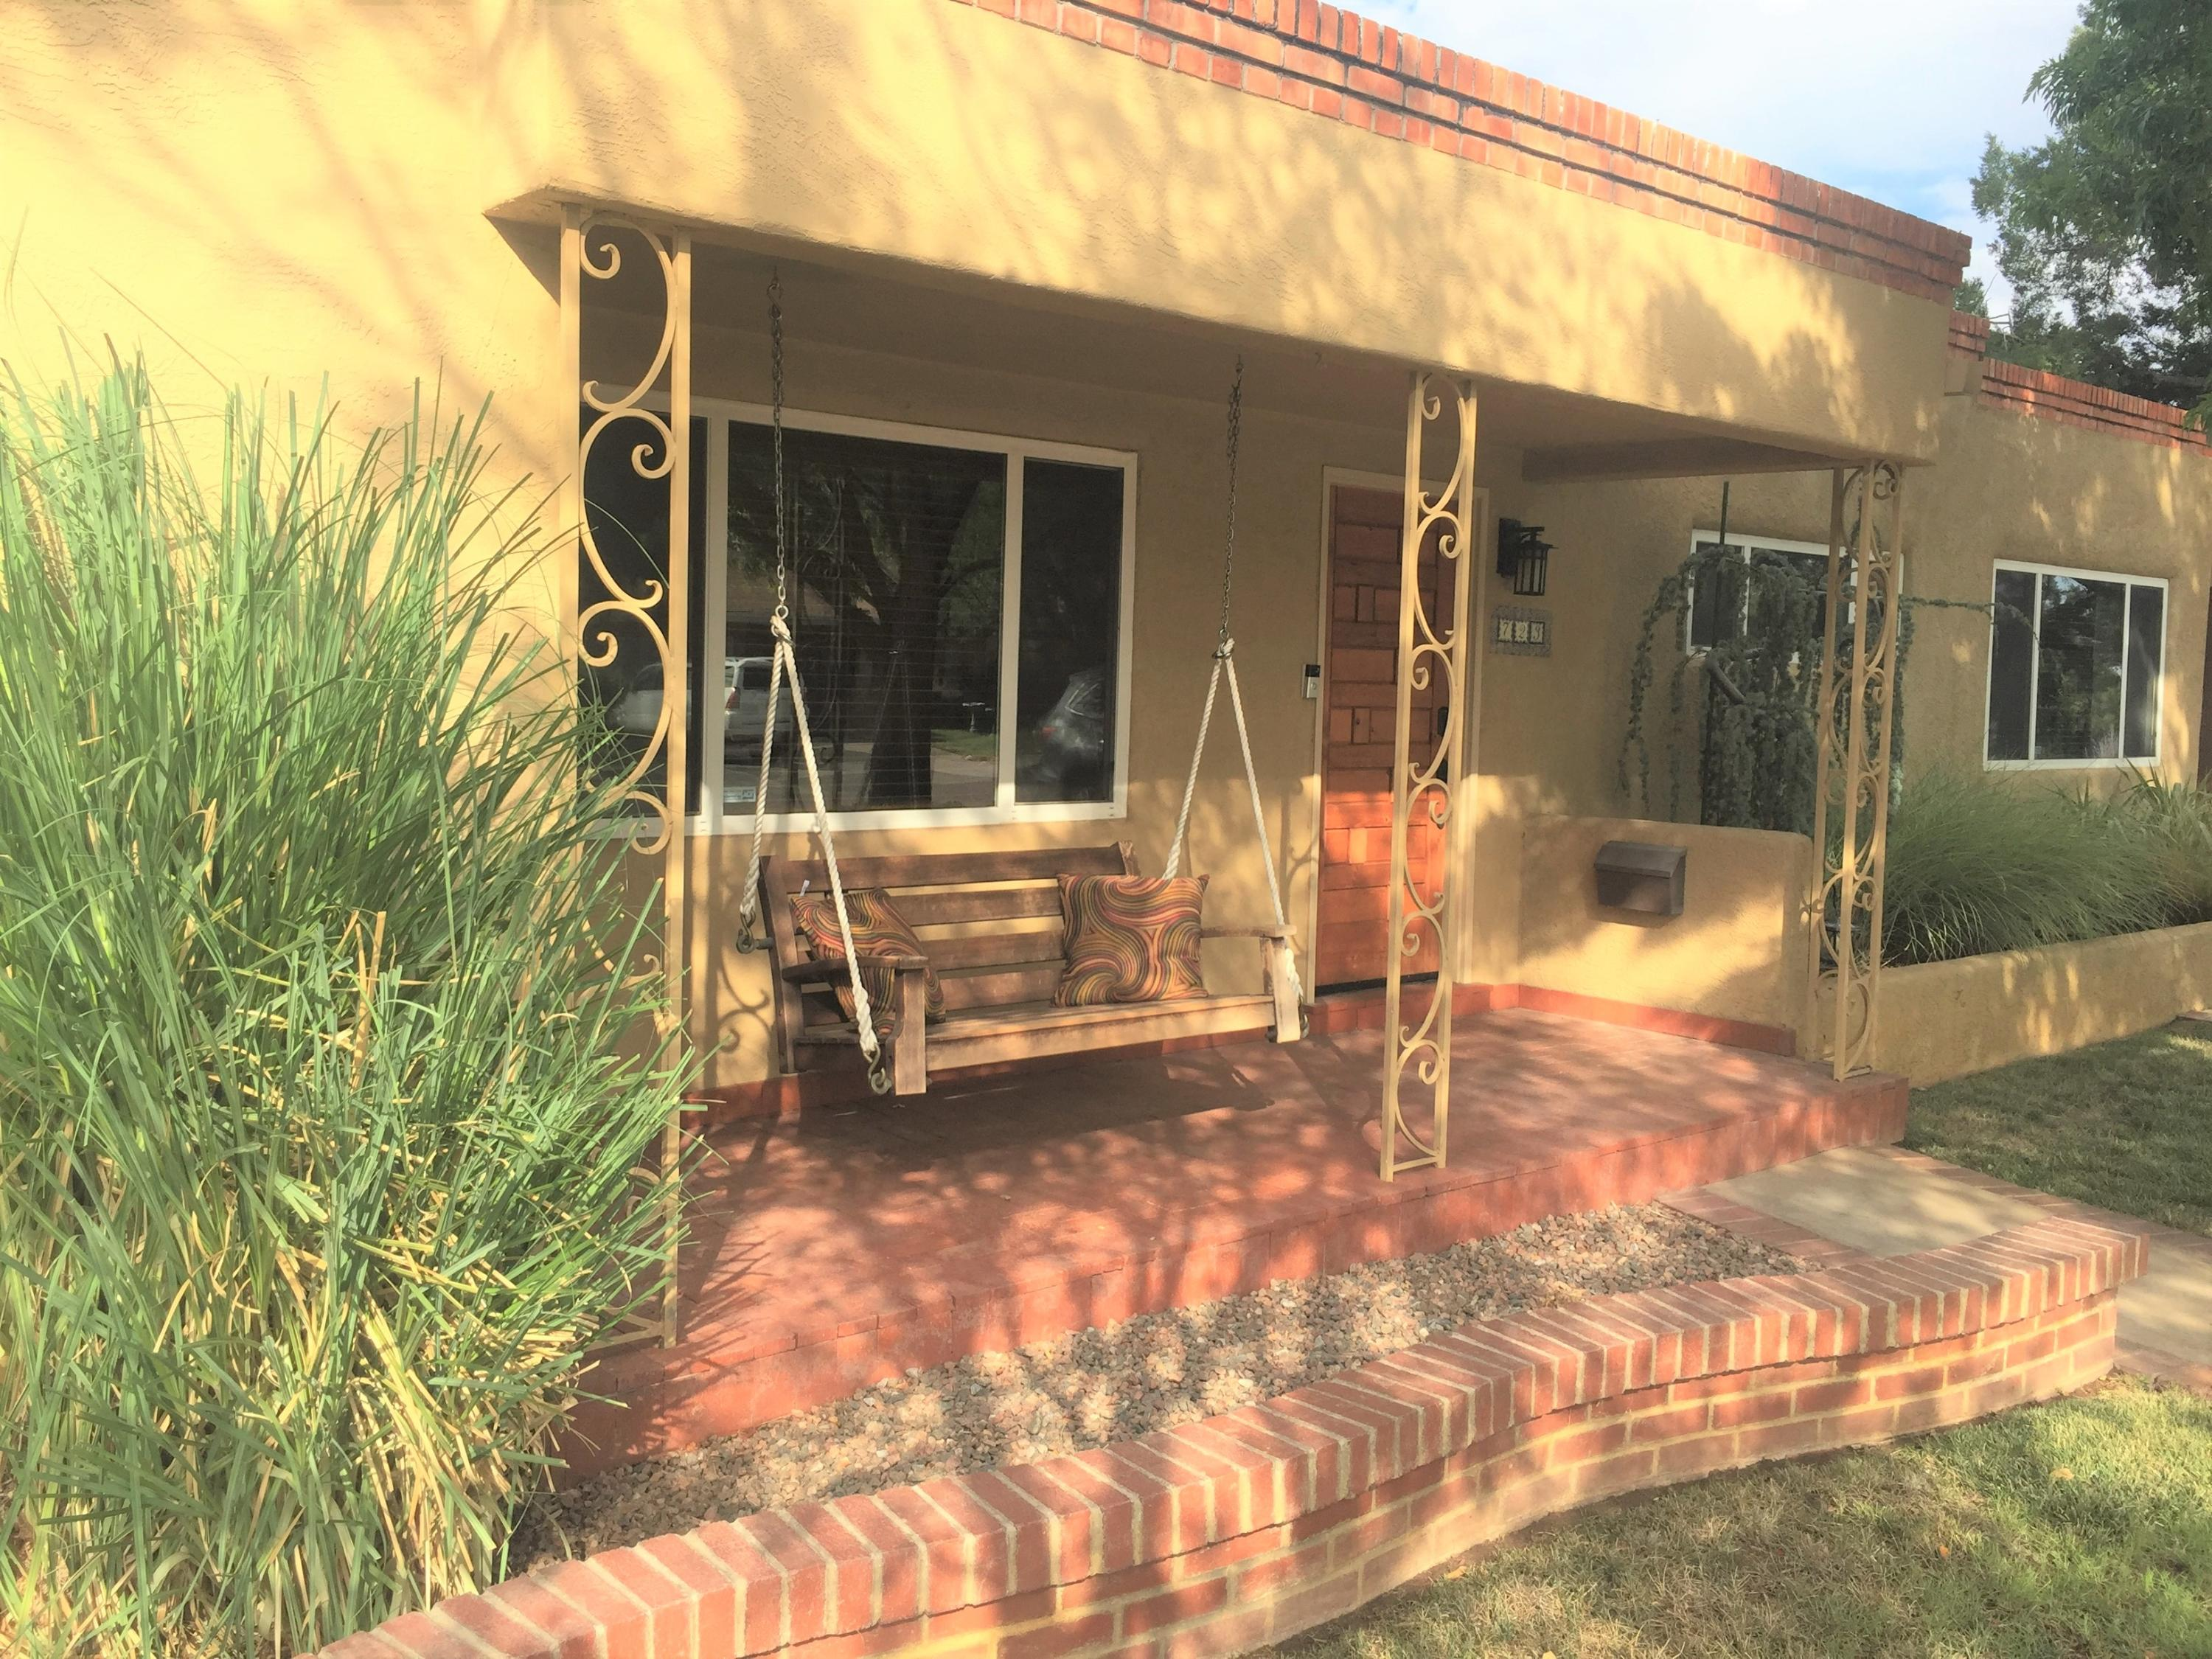 723 MORNINGSIDE DRIVE NE, ALBUQUERQUE, NM 87110